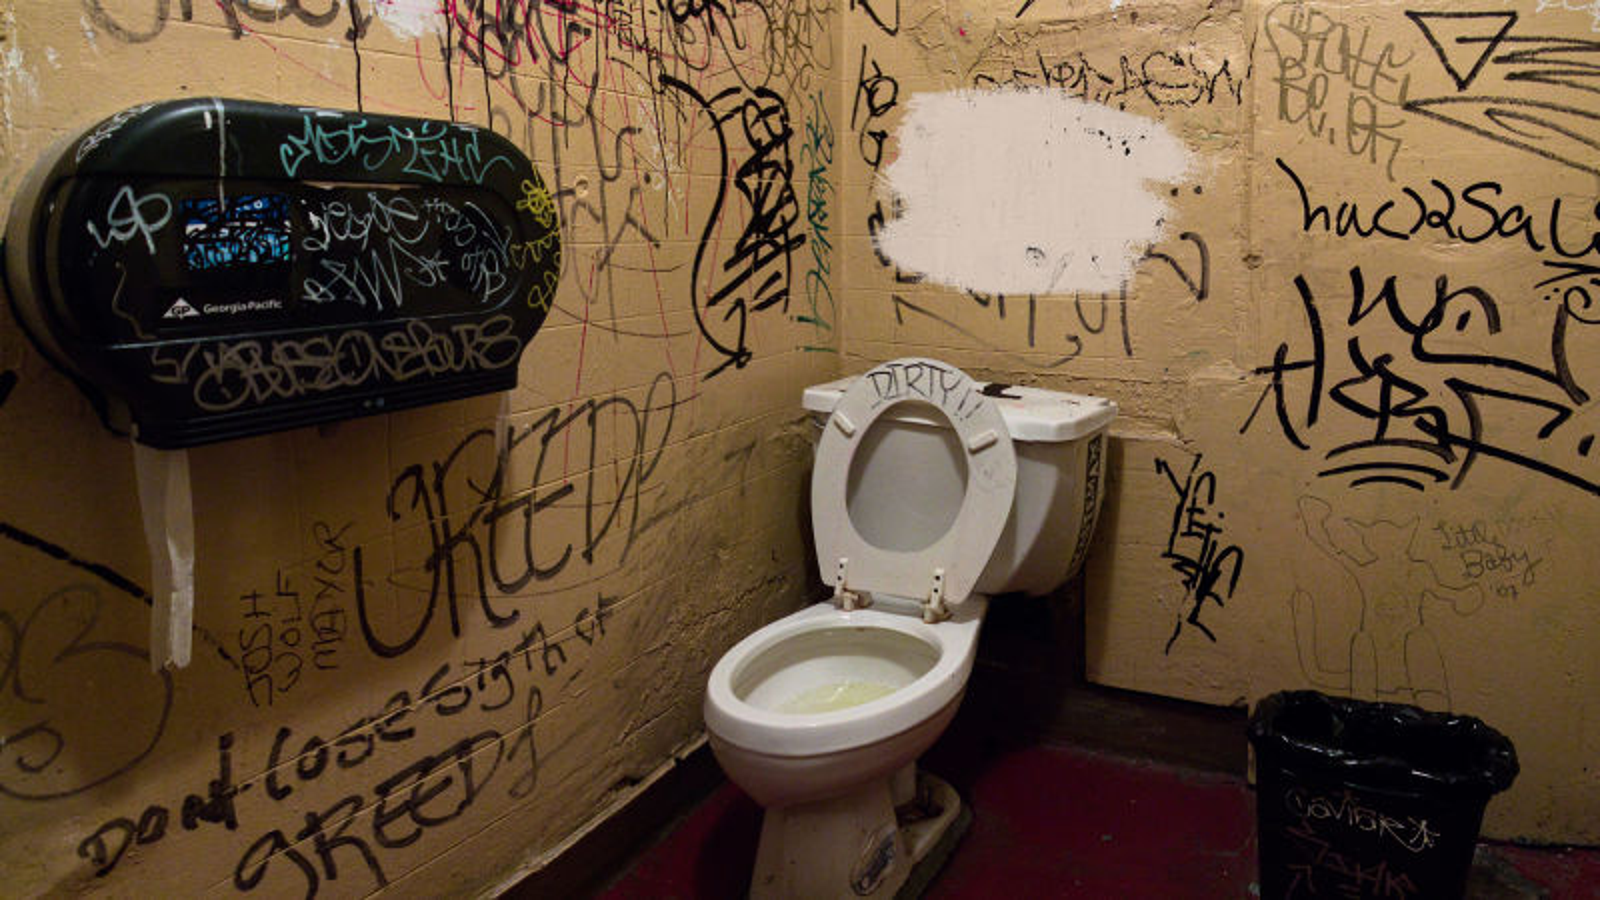 Painted-Over Spot On Public Bathroom Wall Must Conceal Some Really Fucked-Up Graffiti